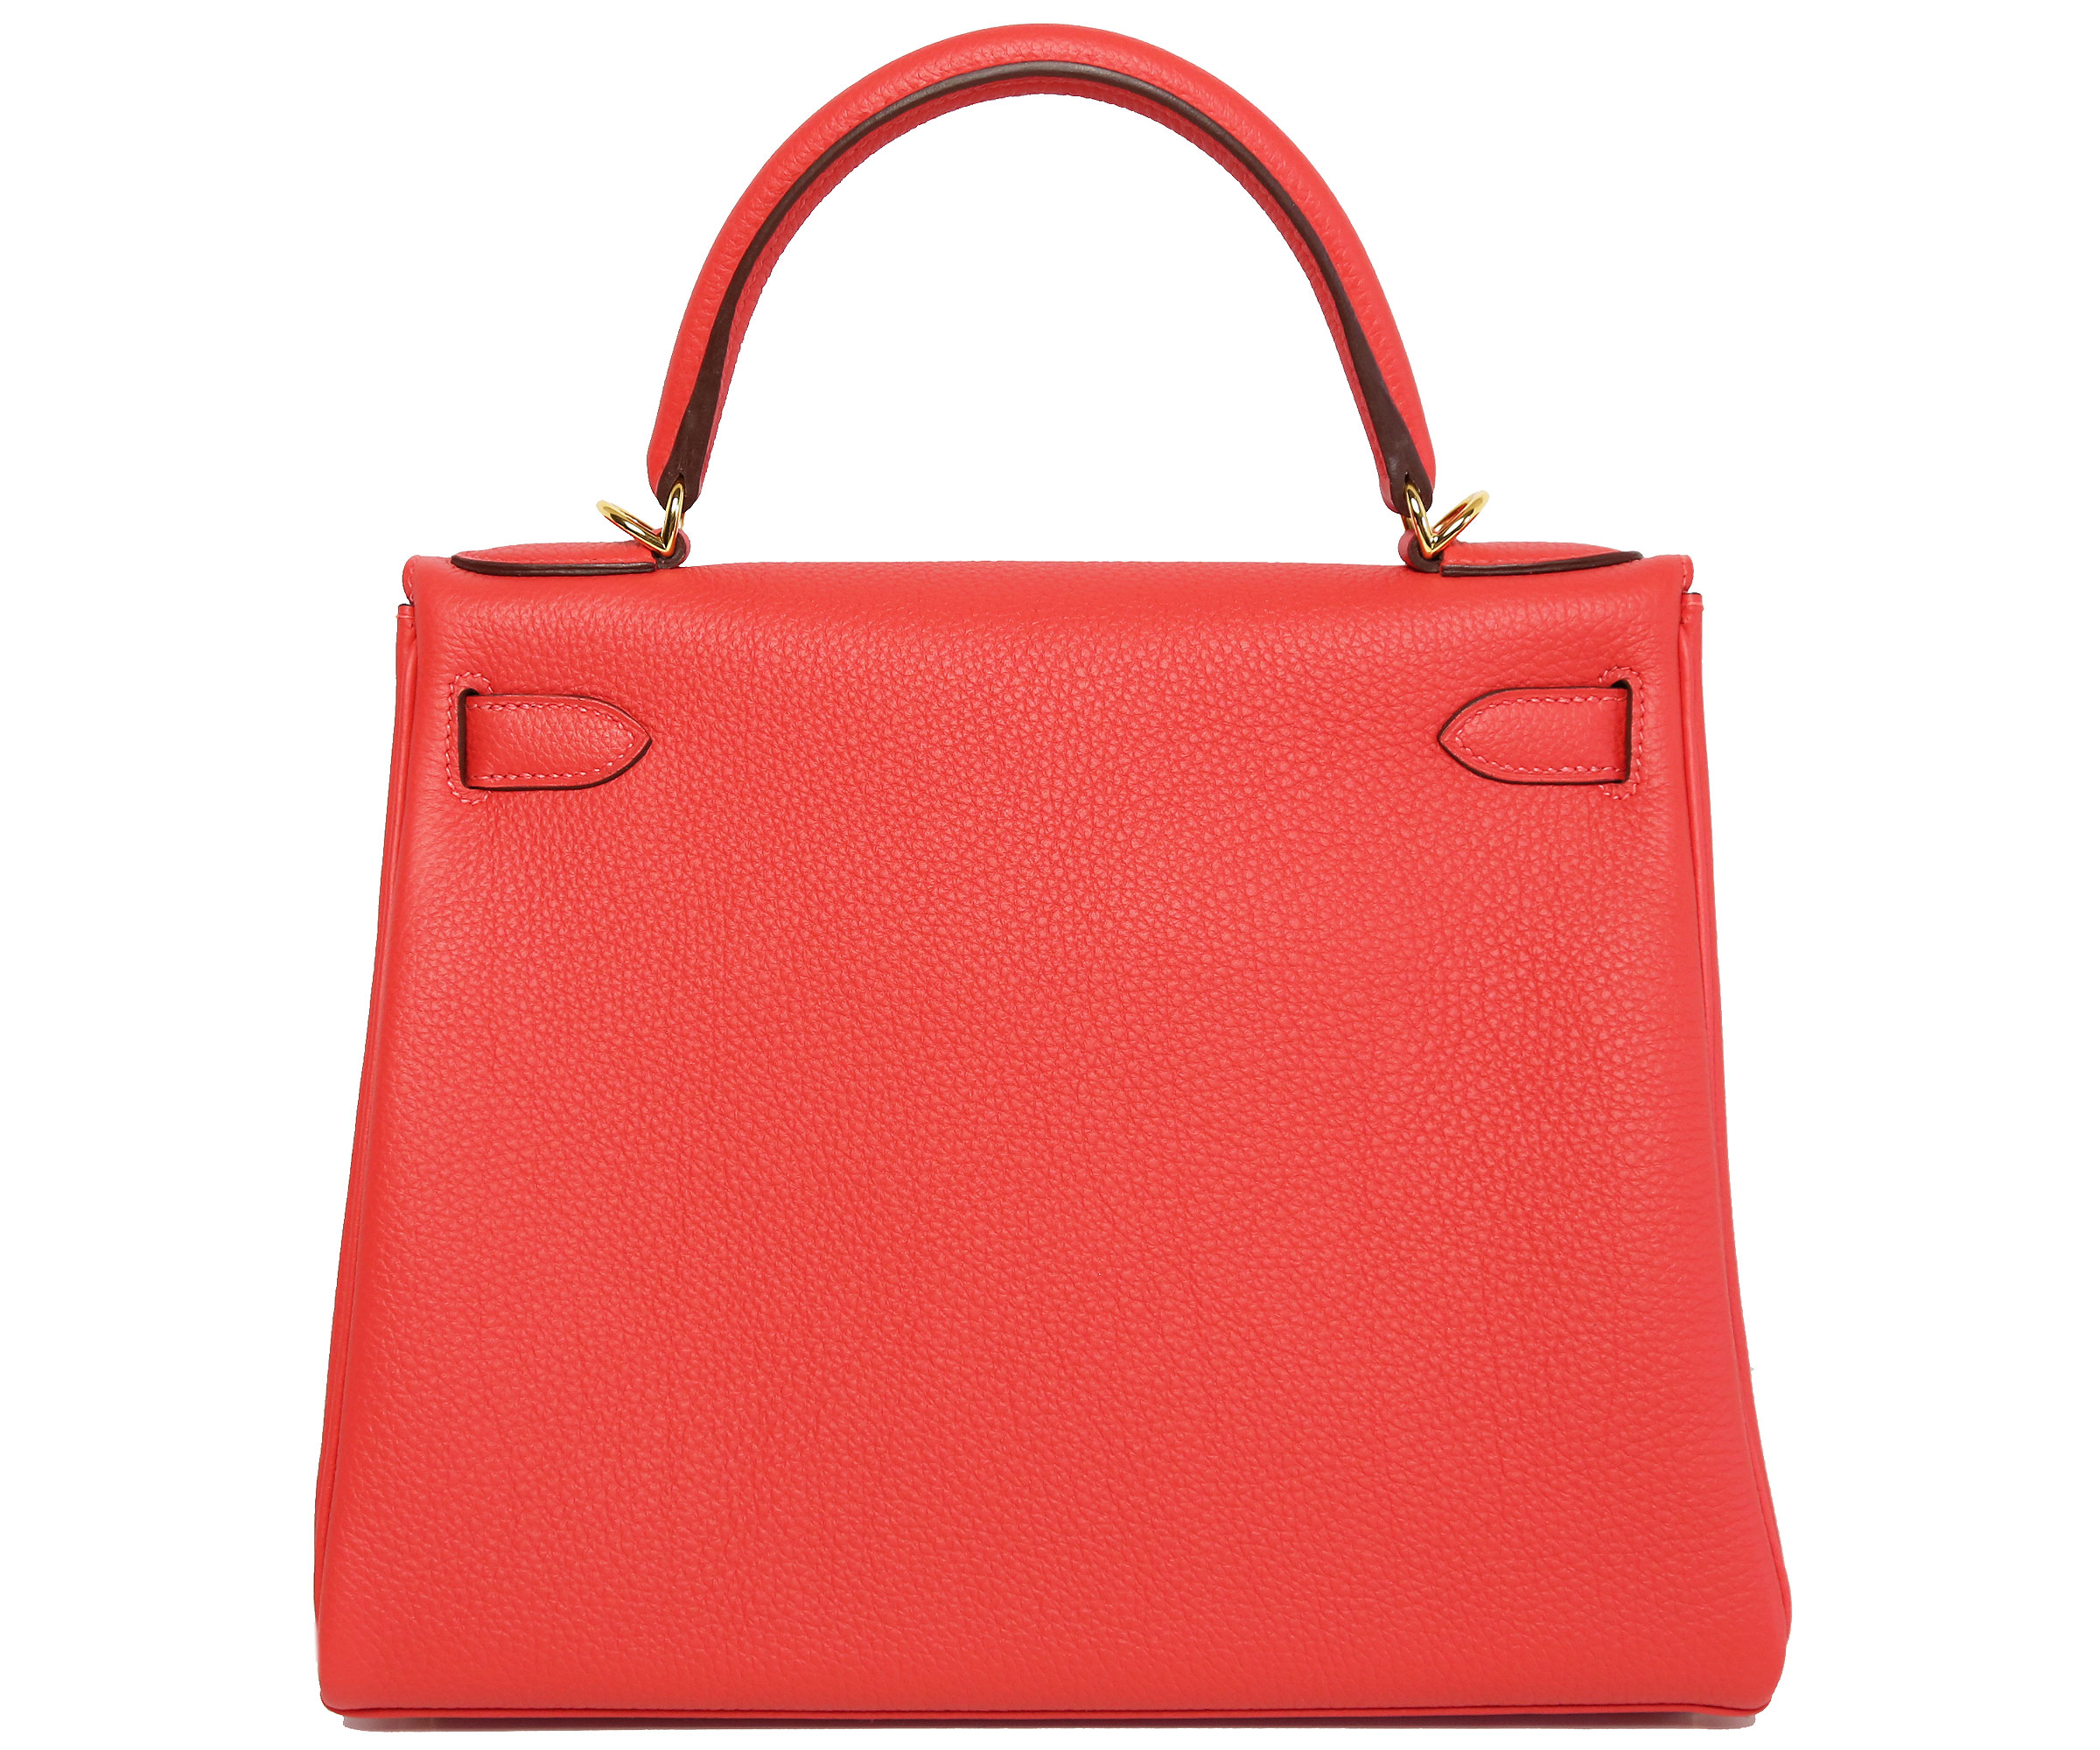 Hermes Kelly Rouge Pivoine 28cm, Togo with Gold Hardware